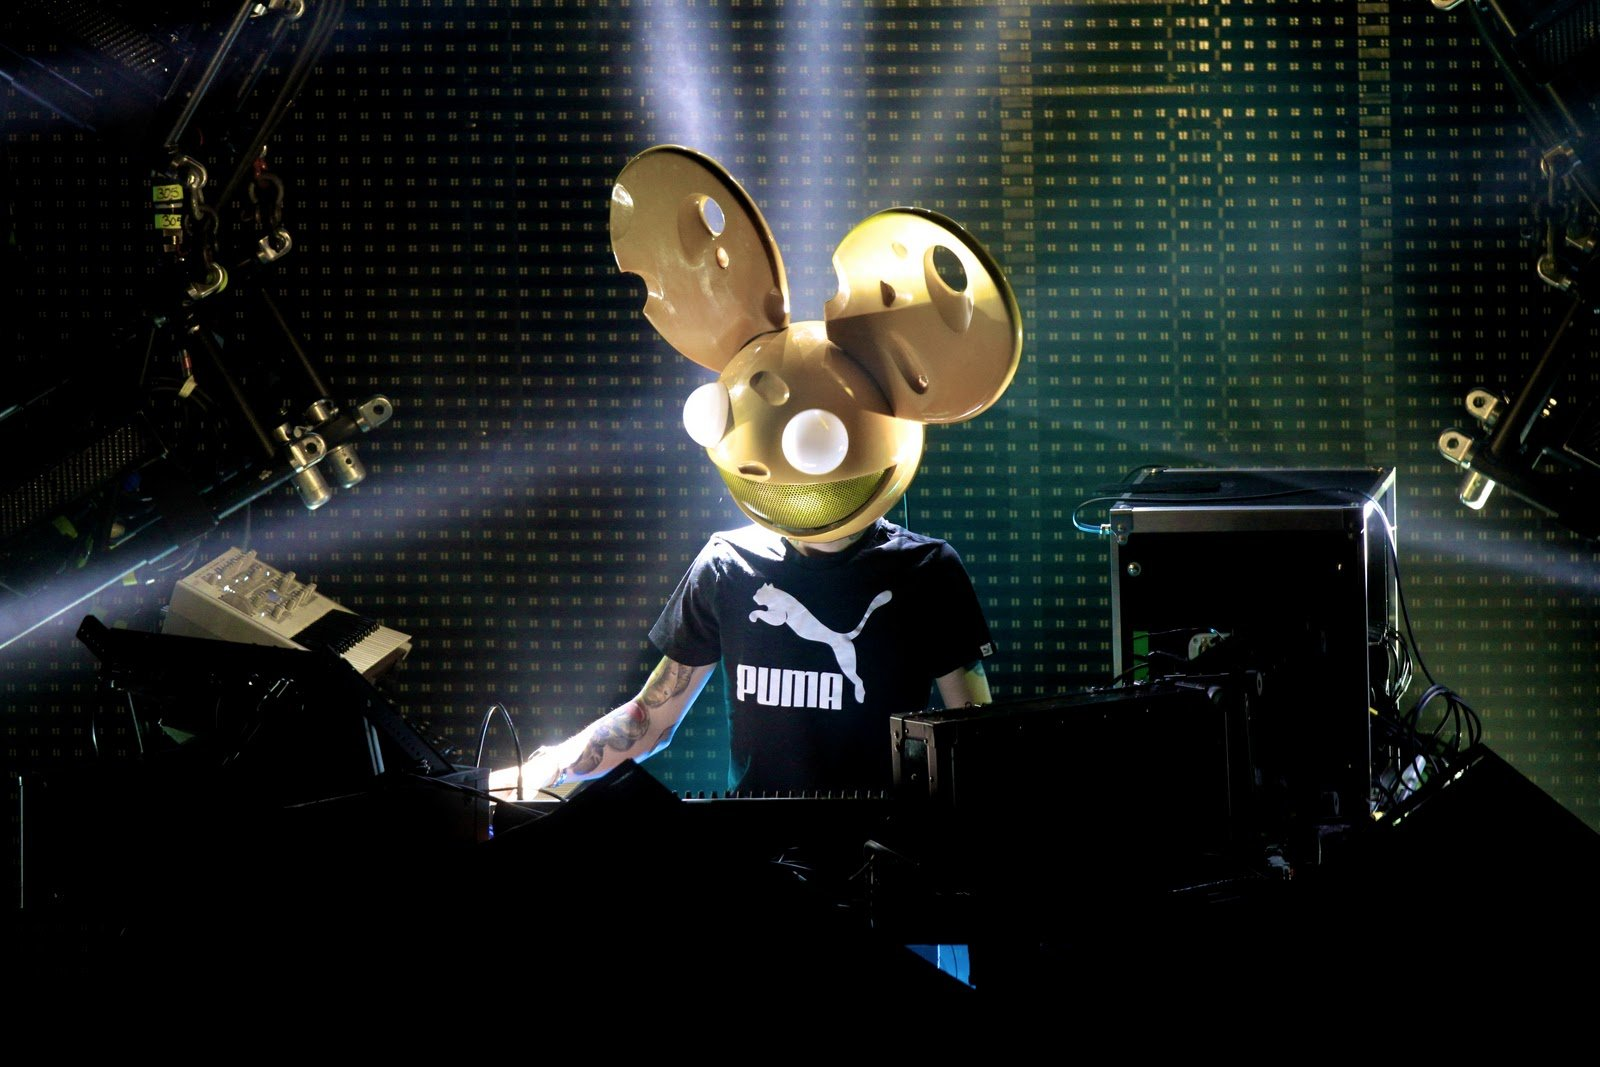 Microgaming To Launch deadmau5 Branded Slot